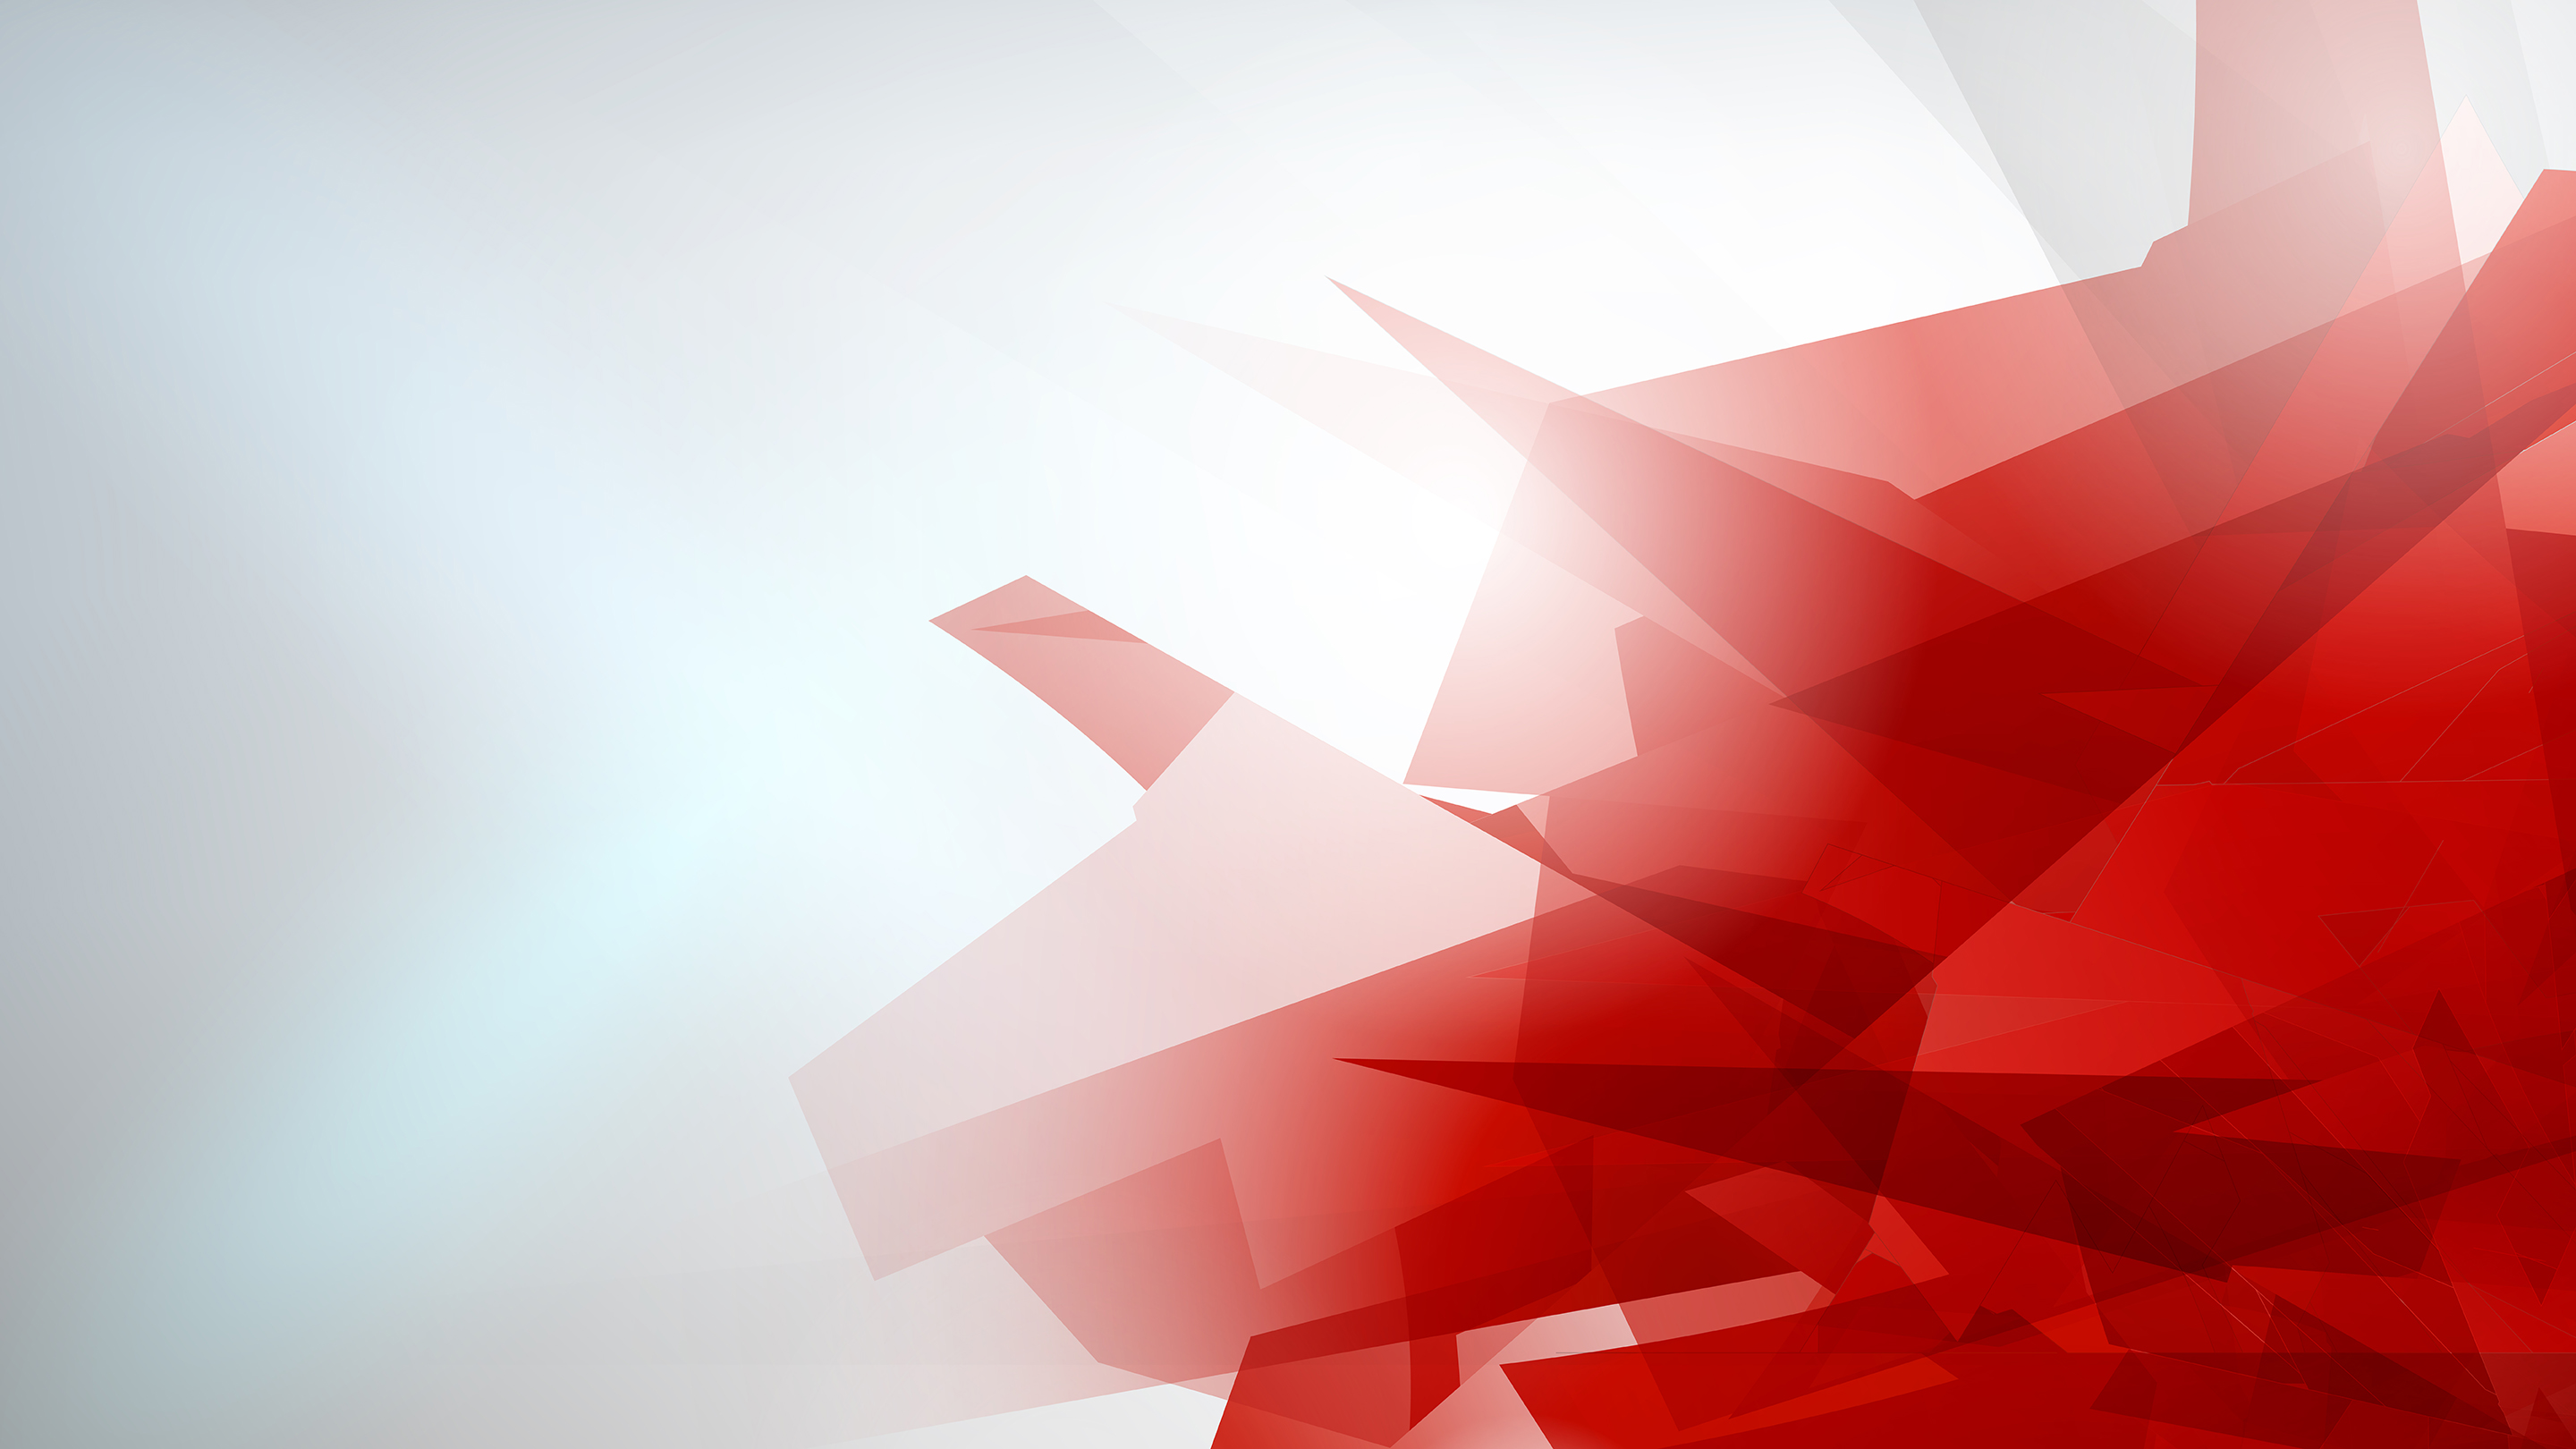 Lenovo wallpapers that come with Windows 81   Lenovo Community 2880x1620